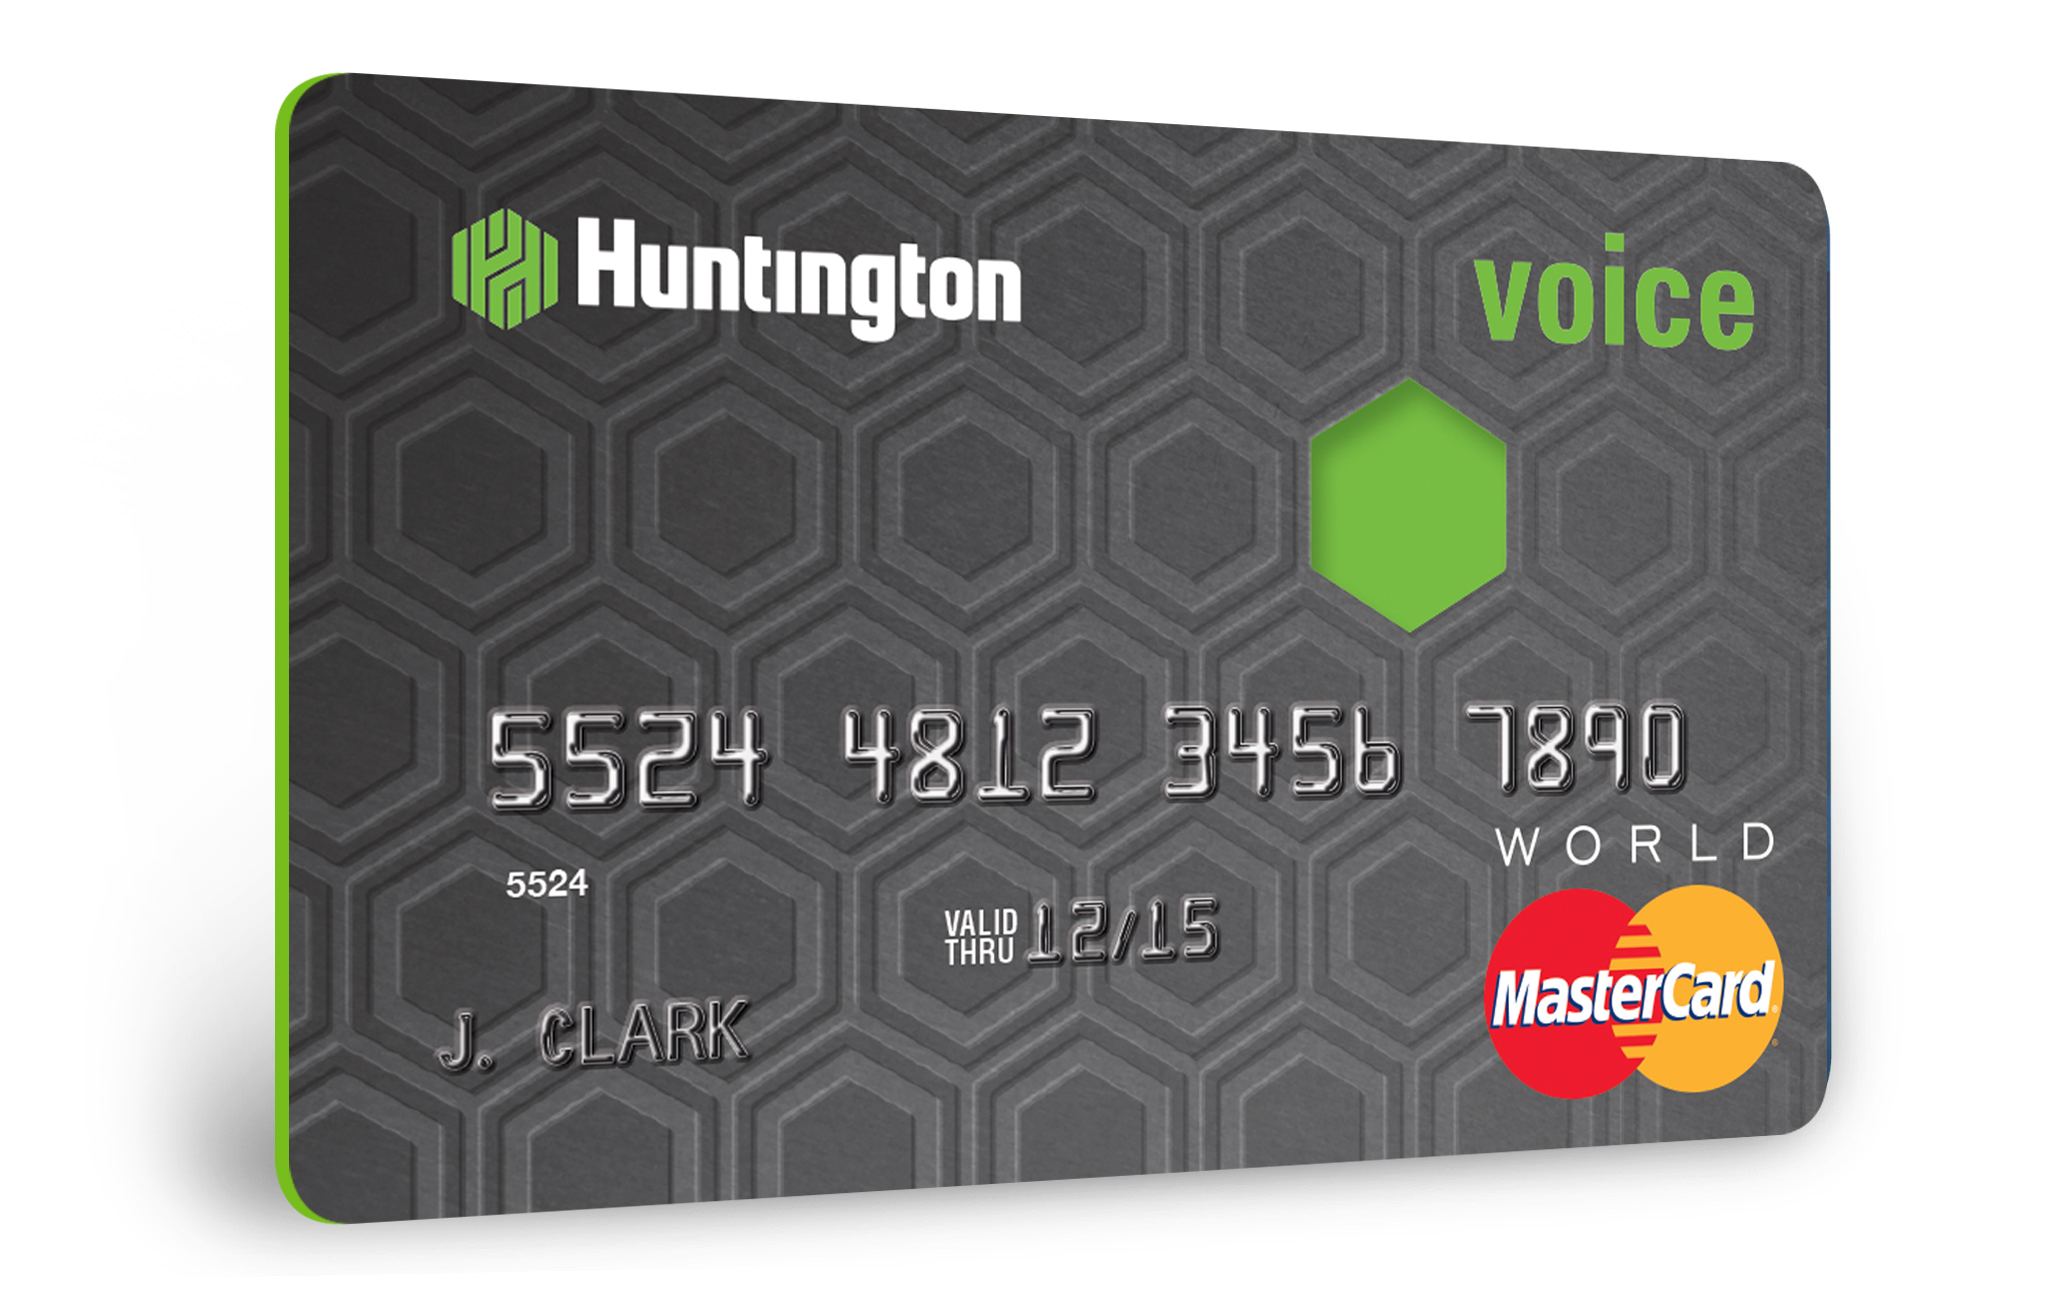 voice new huntington credit card offers unique customer rewards choices business wire. Black Bedroom Furniture Sets. Home Design Ideas